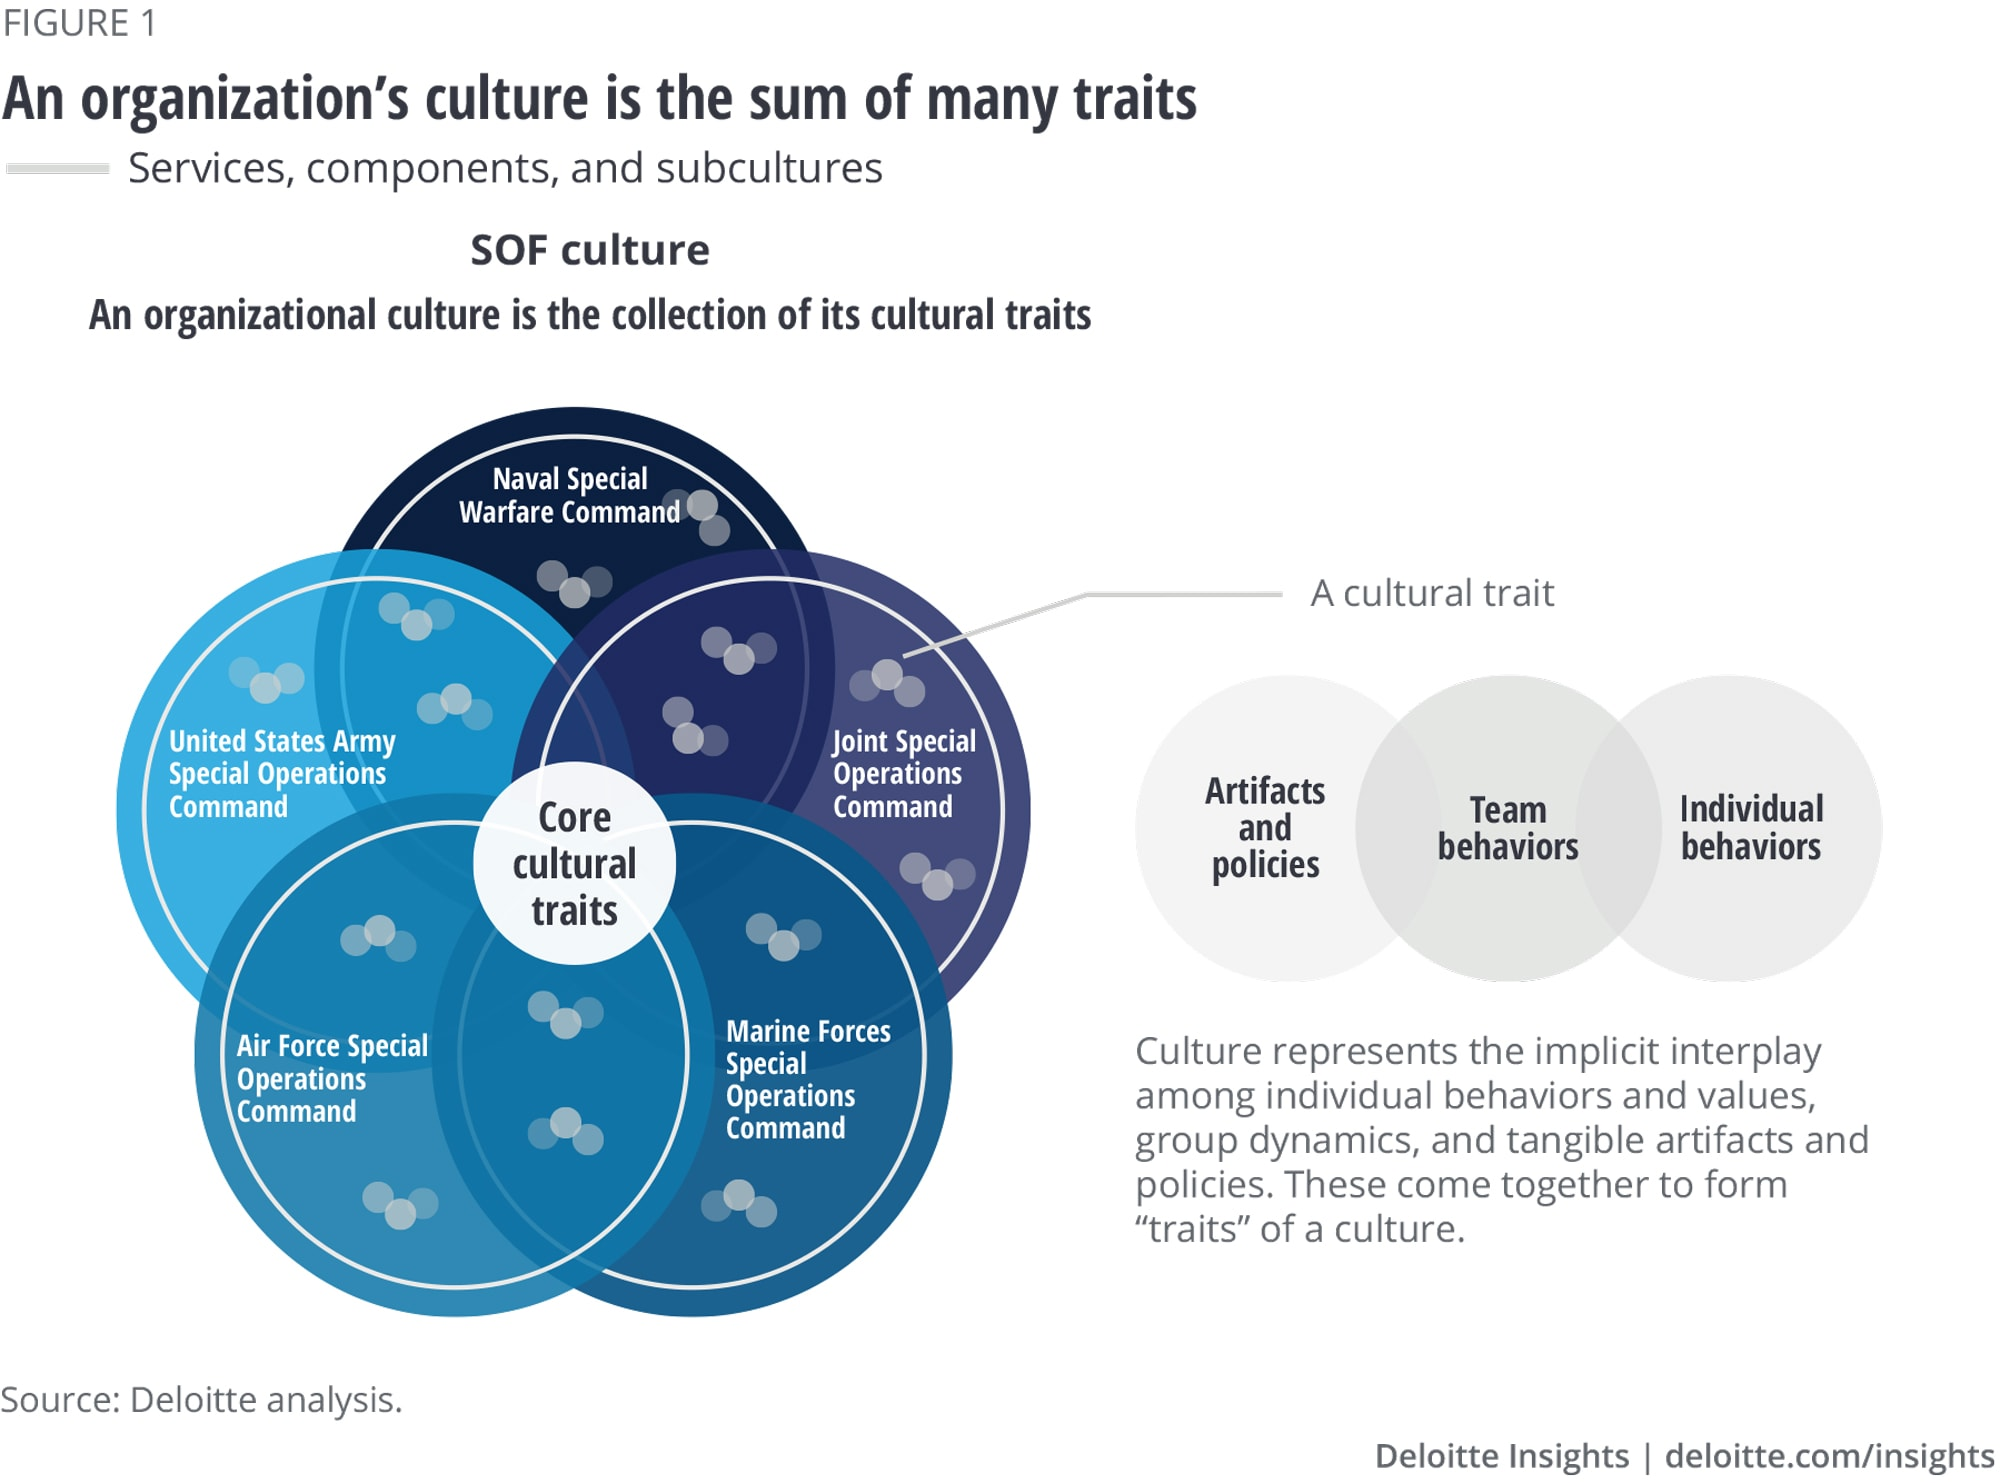 An organization's culture is the sum of many traits